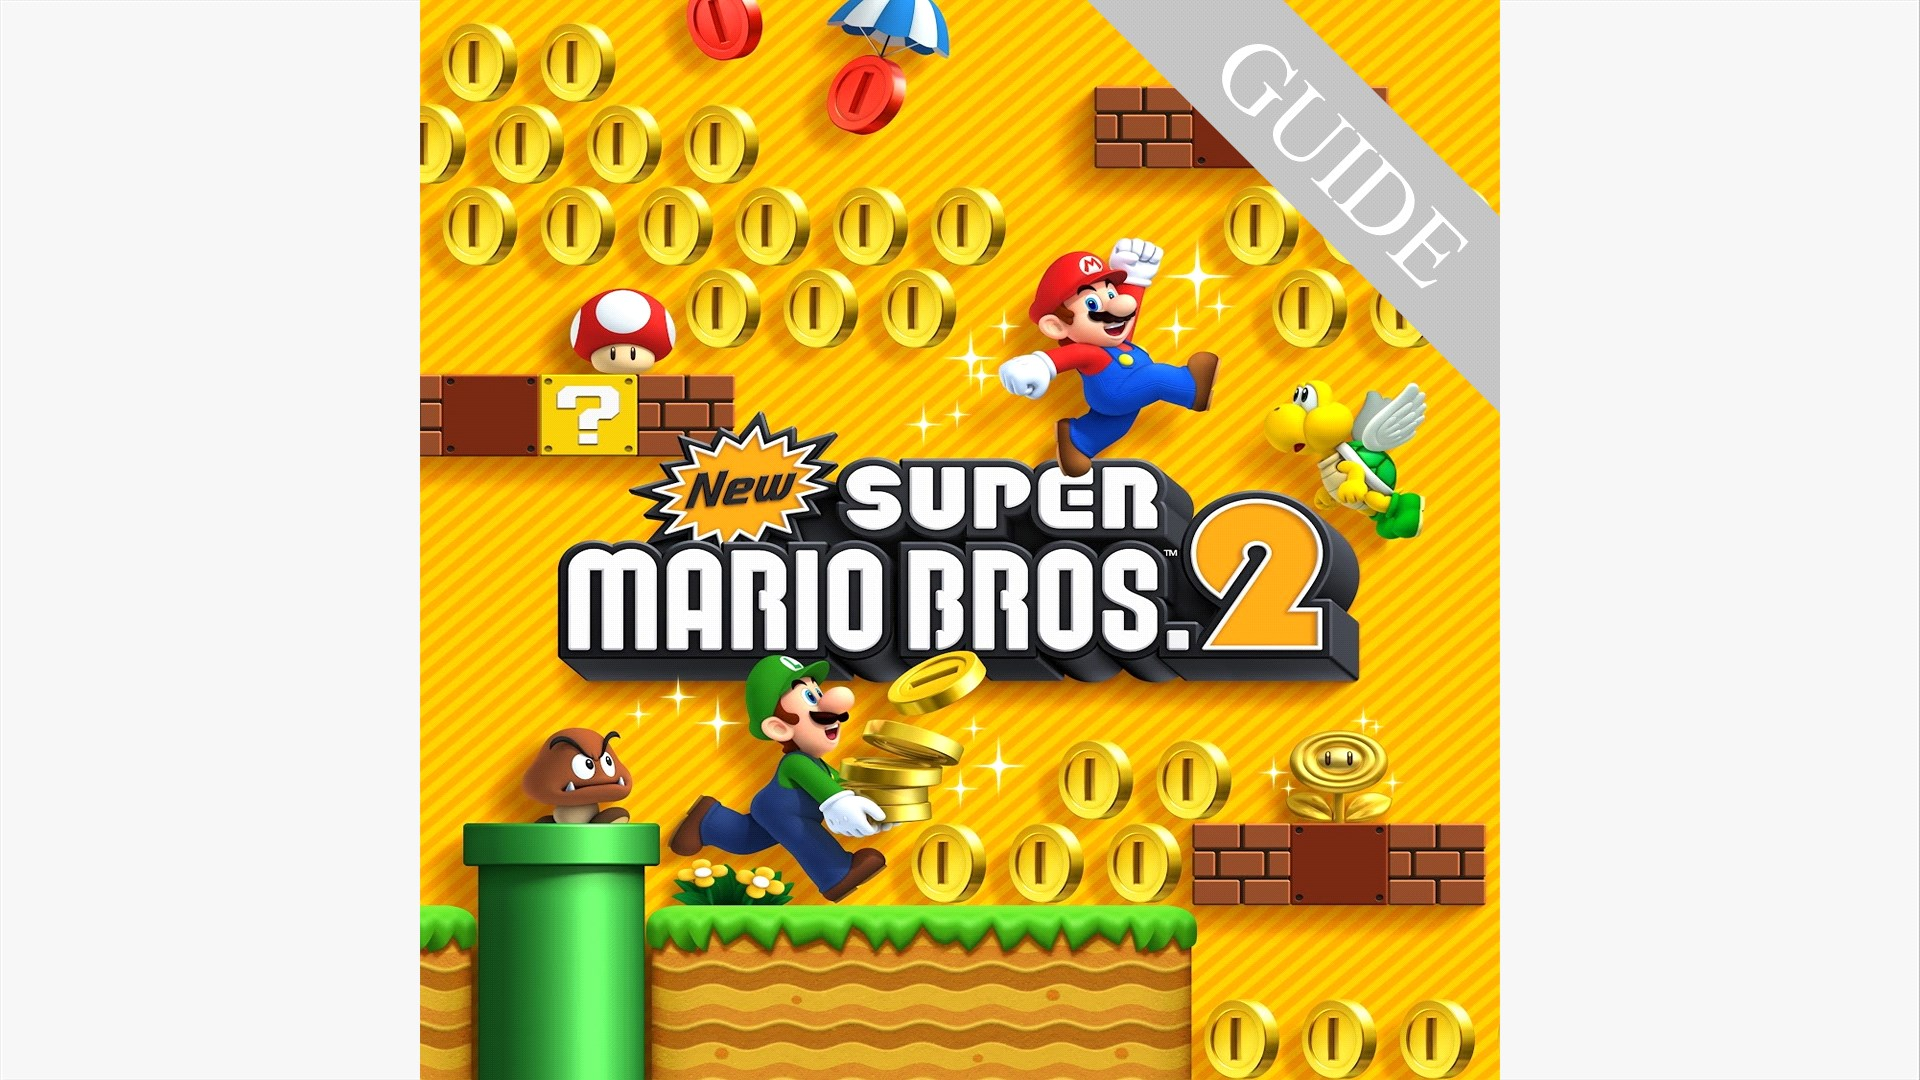 Buy New Super Mario Bros 2 Guide App Microsoft Store